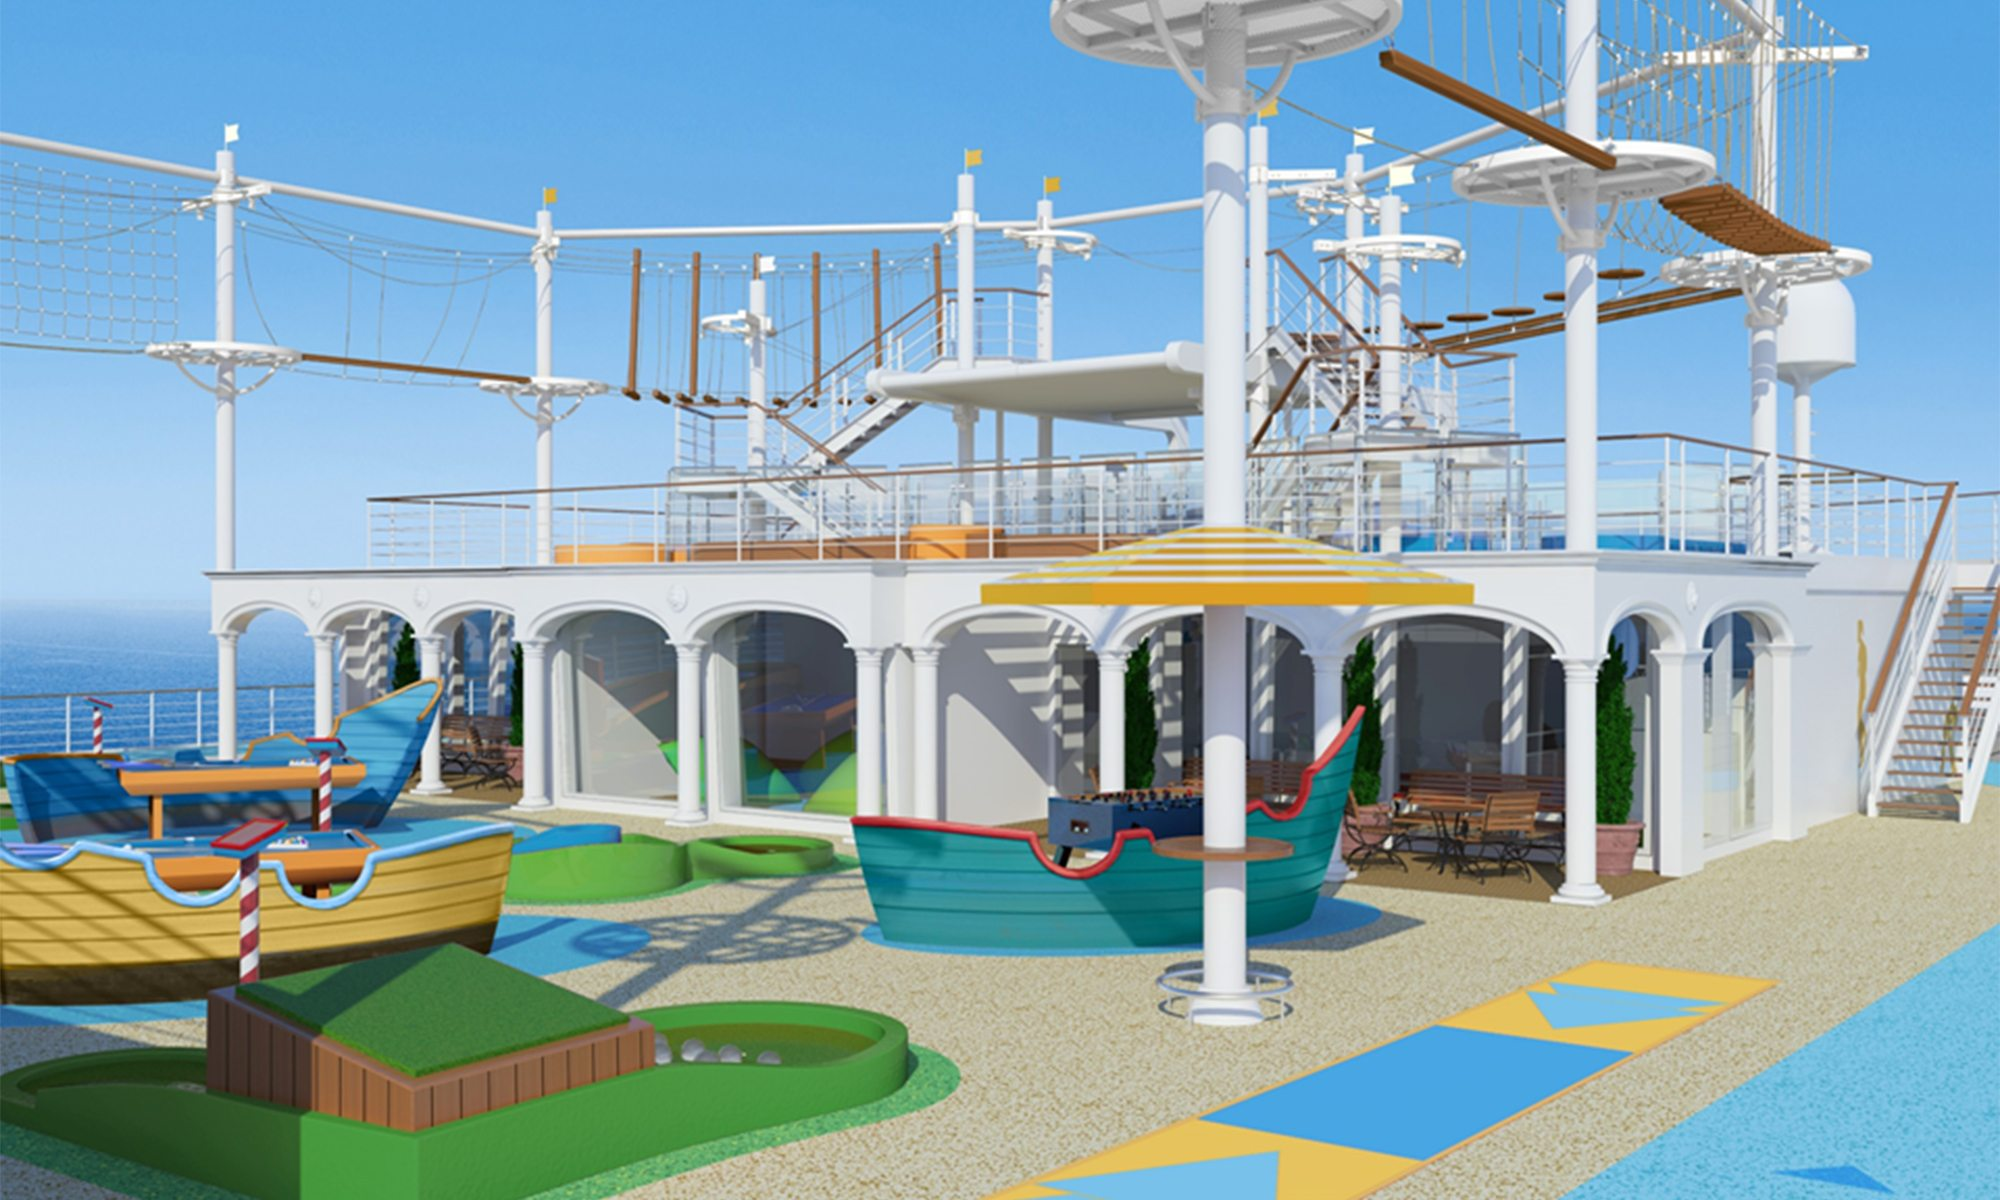 Costa Firenze Cruise Ship 2020 | Images & Reviews